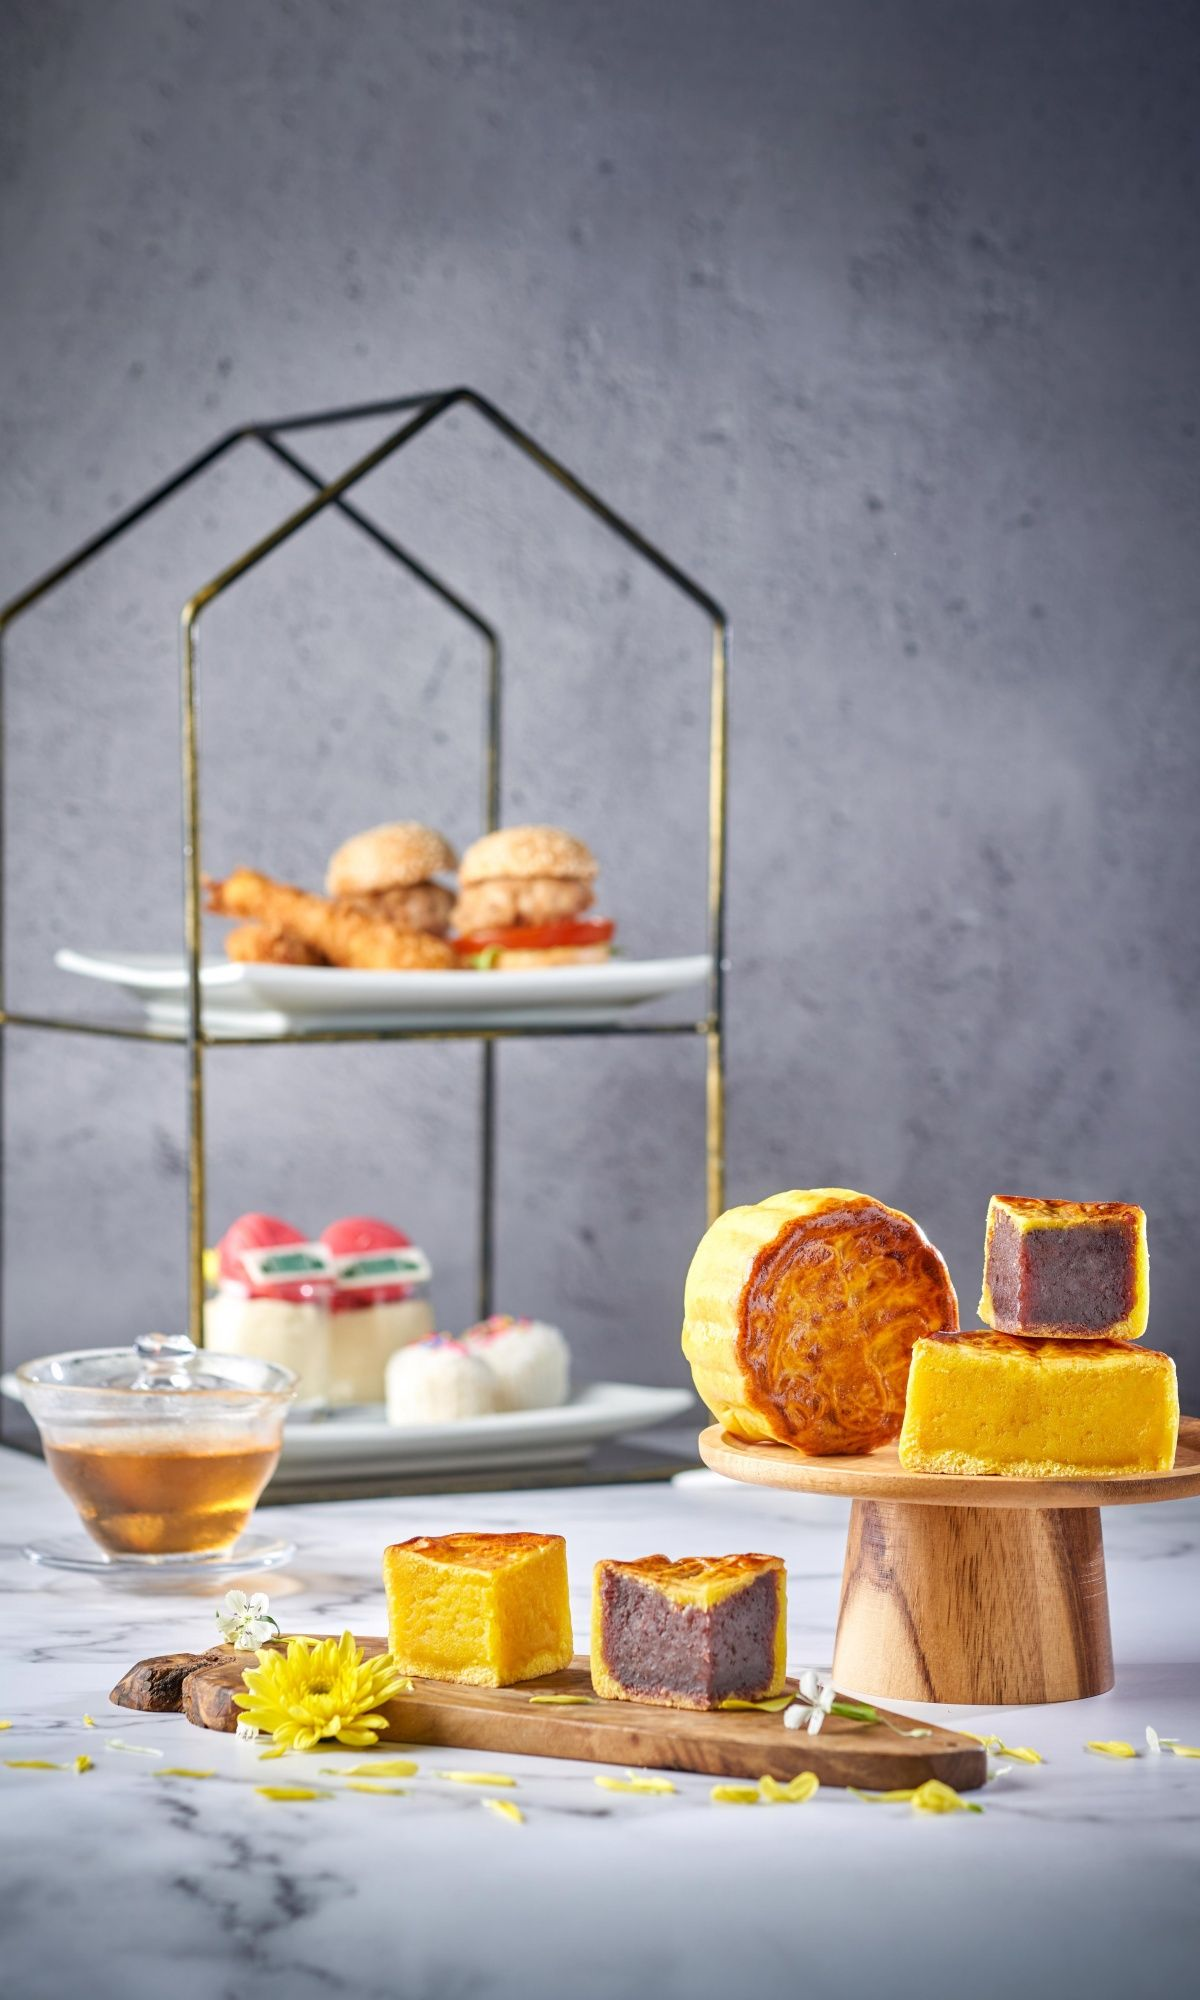 The Best New Afternoon Teas To Try, Plus Three Hong Kong-Inspired Tea Sets